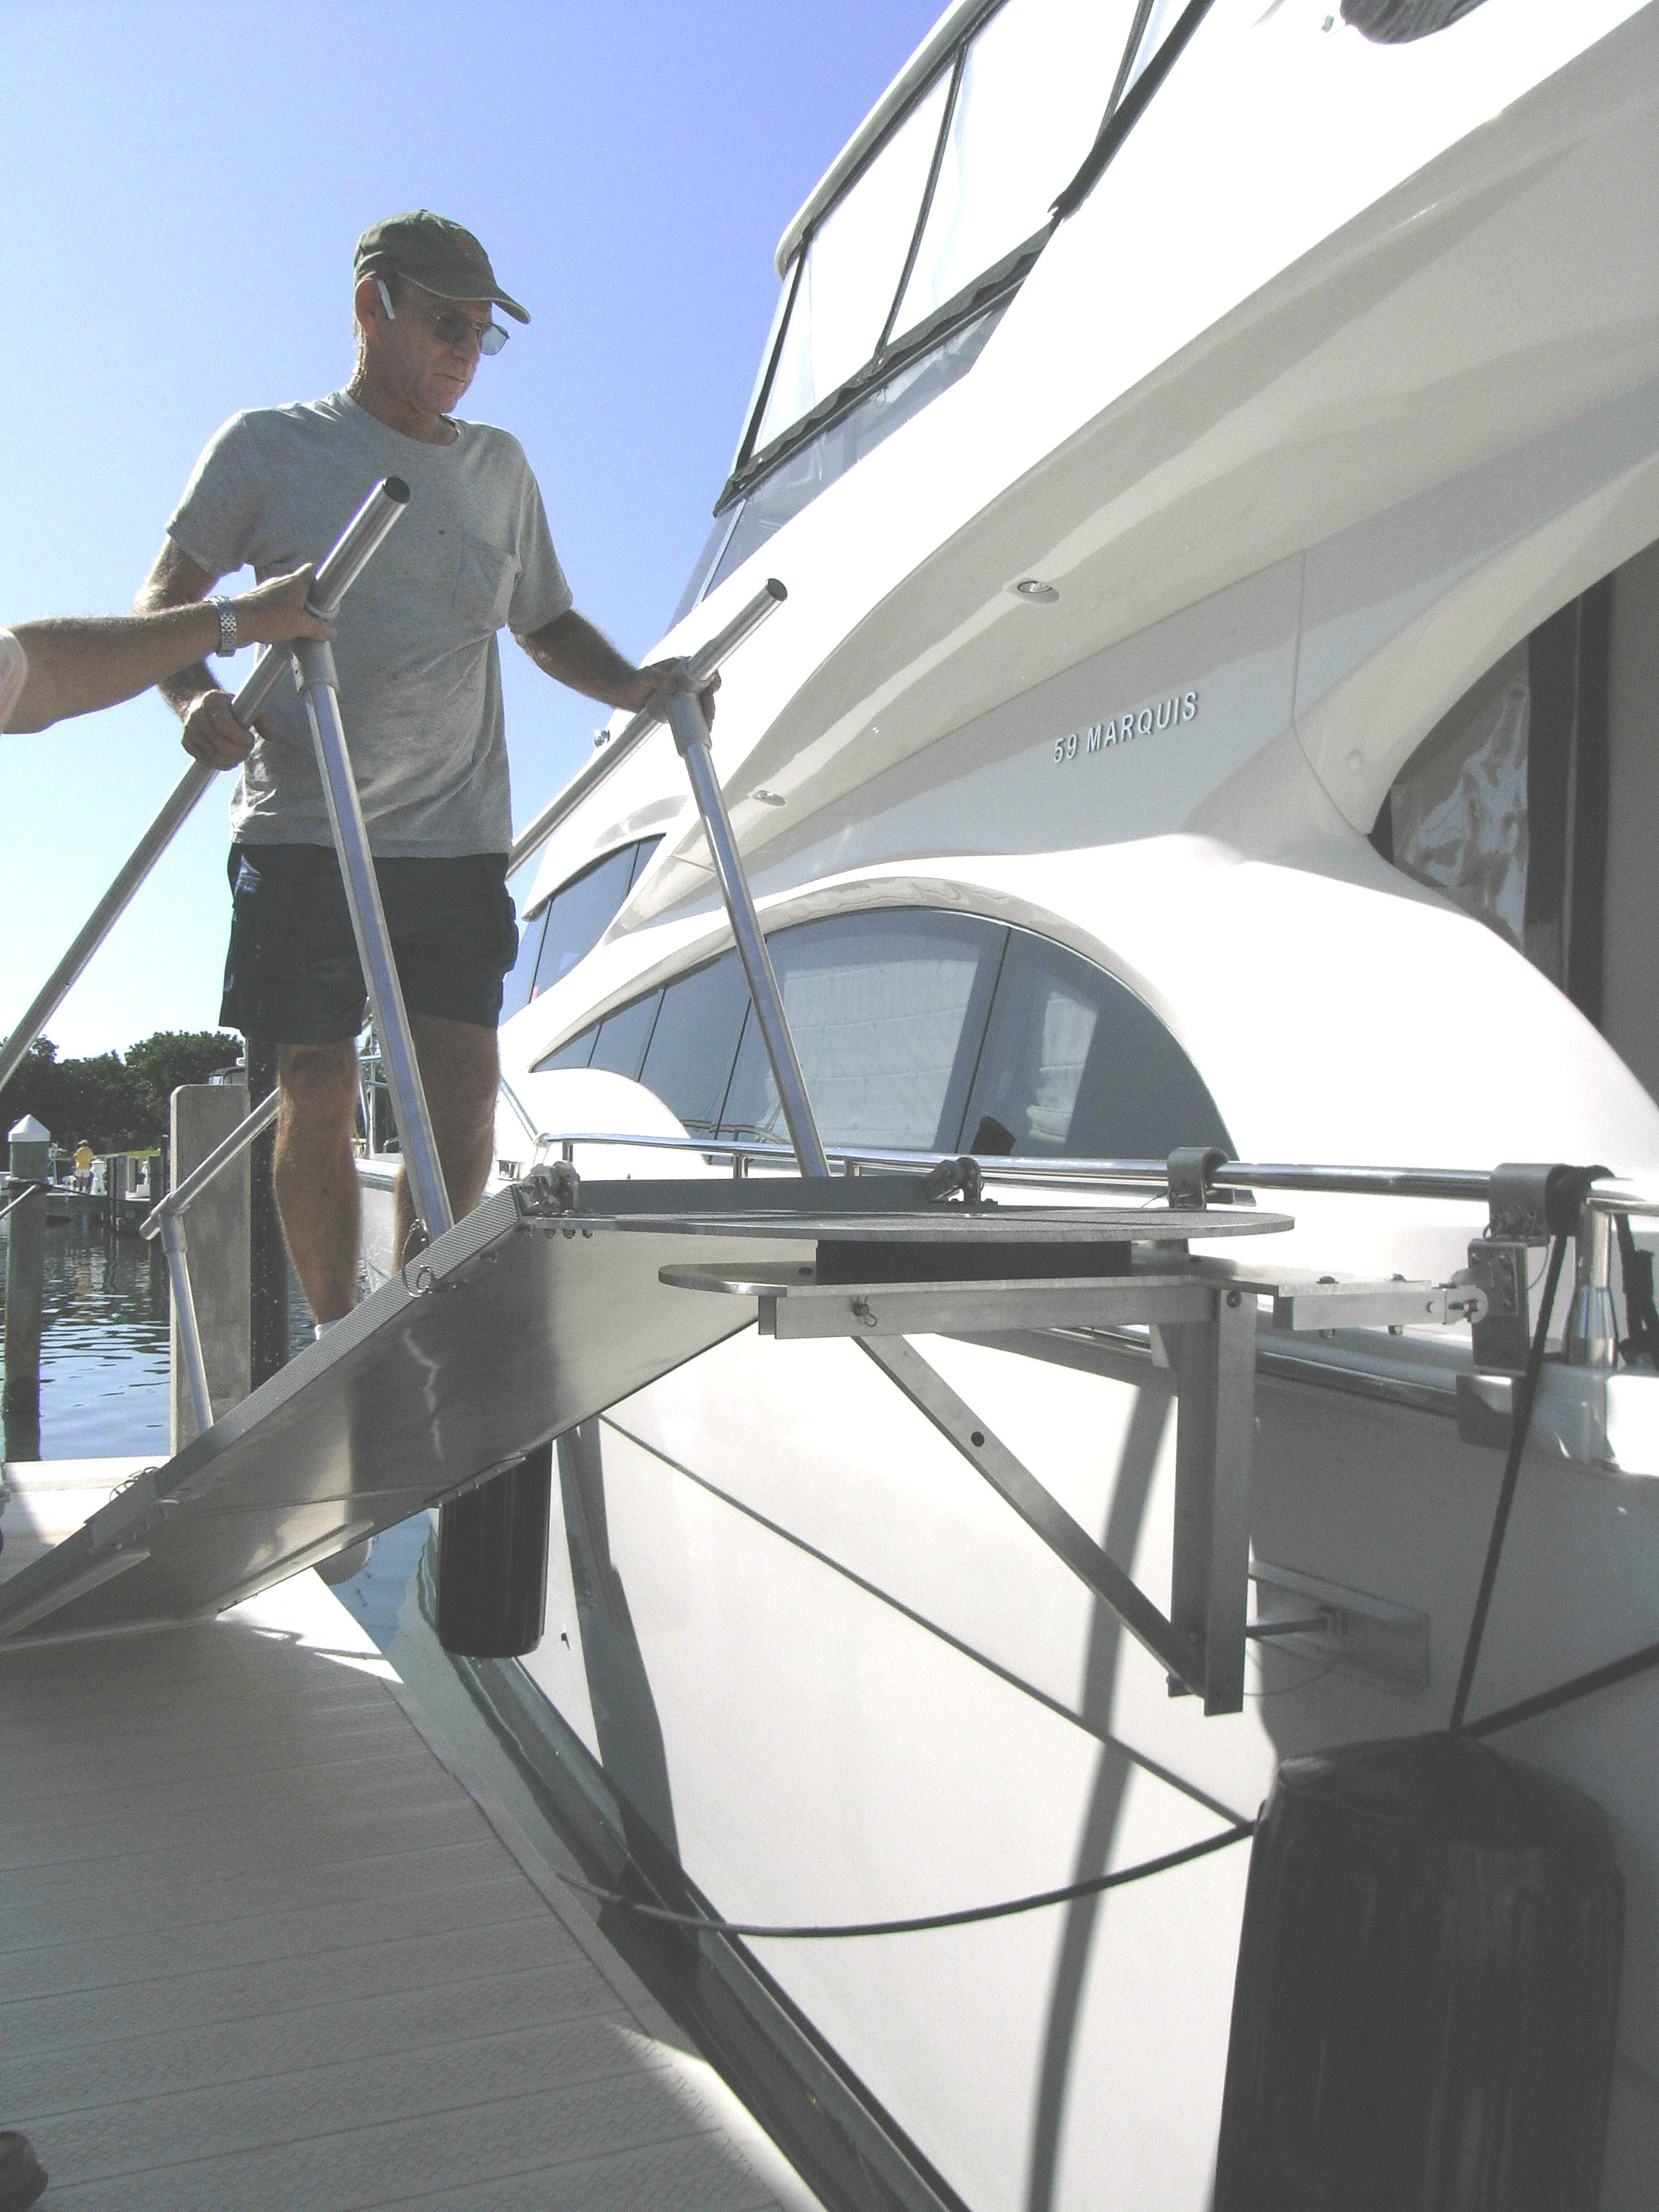 8' ramp with swivel platform on a Marquis 59